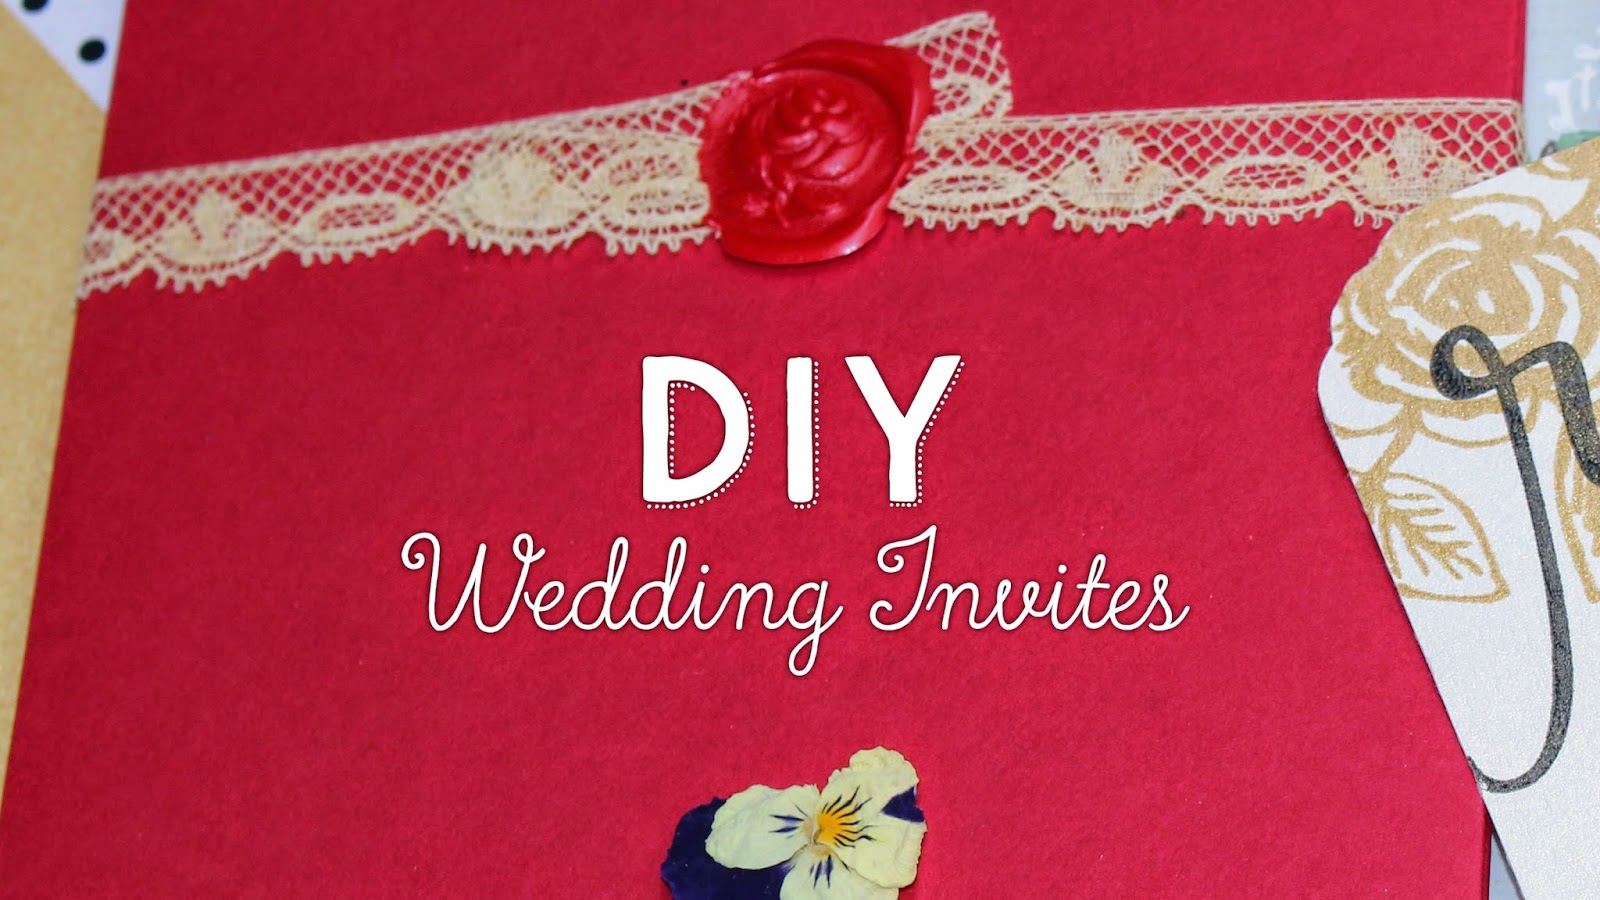 Sophie Gallo Design Blog: DIY Wedding Invitations